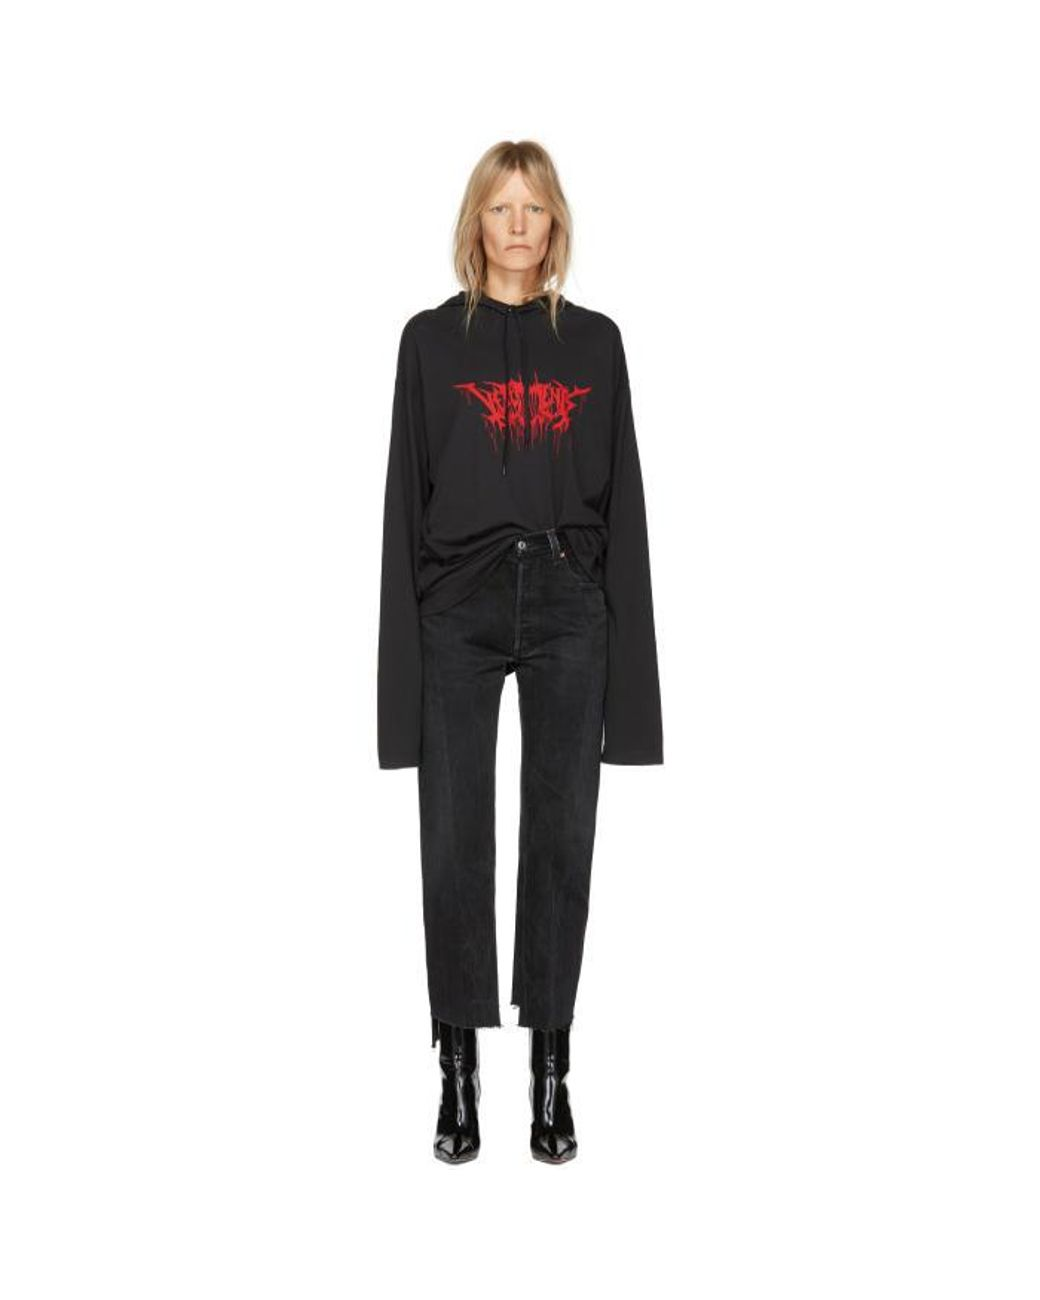 vetements ltee Vetements ltee encountered competitiveness and back-stabbing among employees when it introduced its new incentives program vêtements ltée is a chain of men's retail clothing stores located throughout quebec, canada.